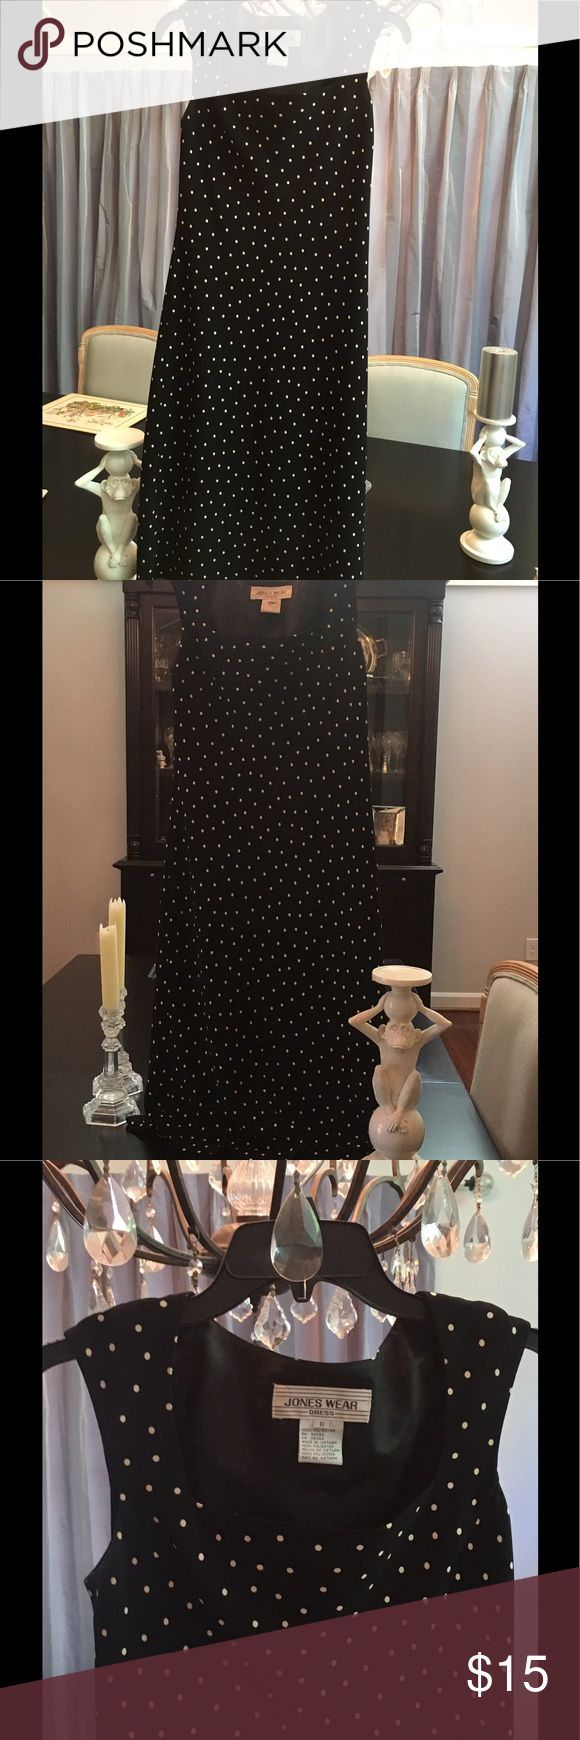 "EUC Jones polka dot black & white summer dress Just dropped the PRICE ‼️ Such a nice , high quality long dress. This is a very neat and flattering cut design. I am 5'8"" and it falls mid chin on me. Lined and from a clean smoke free home Jones wear Dresses Maxi"